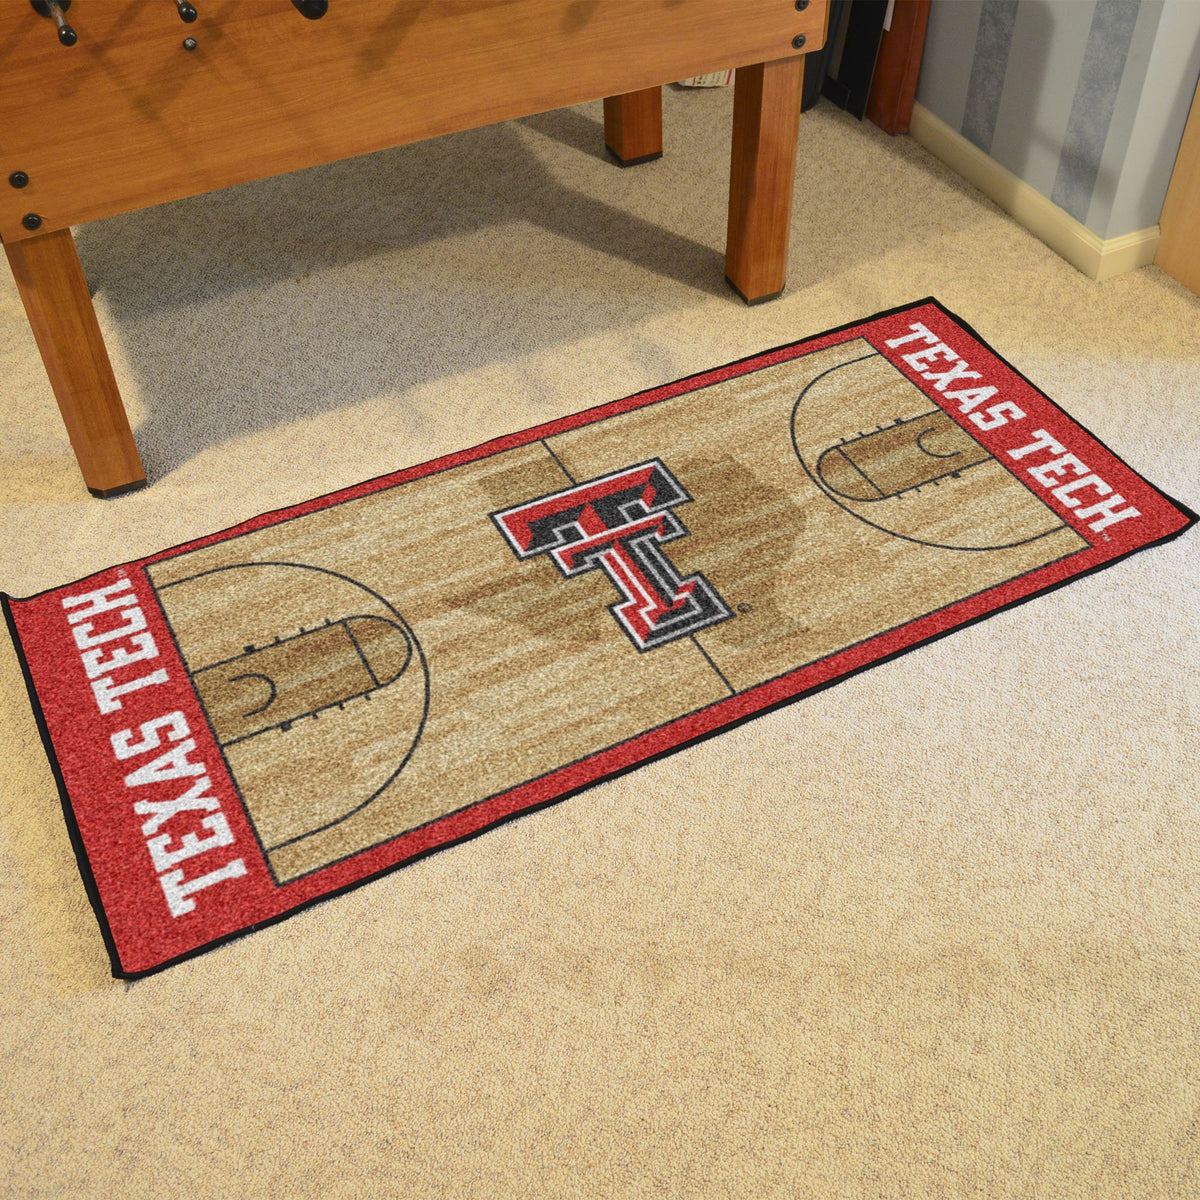 Collegiate - NCAA Basketball Runner Collegiate Mats, Rectangular Mats, NCAA Basketball Runner, Collegiate, Home Fan Mats Texas Tech